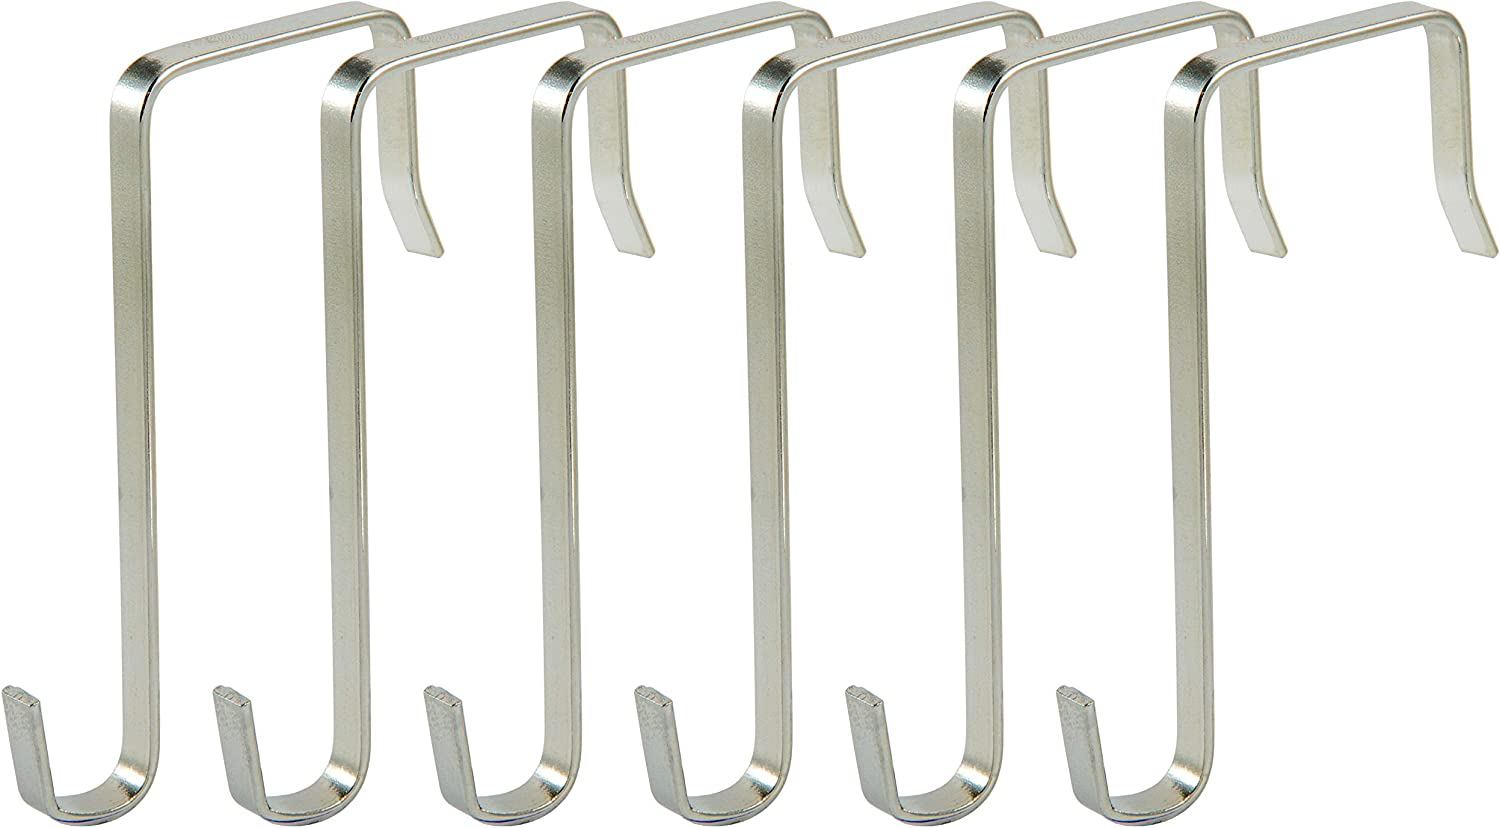 Chromed Steel also use with Cupboards Over Door Hook Pack of 1 Briliant Feet ODH35-1 Use with Doors up to 35mm Thick Cabinets and Drawers 5x1mm Cross Section